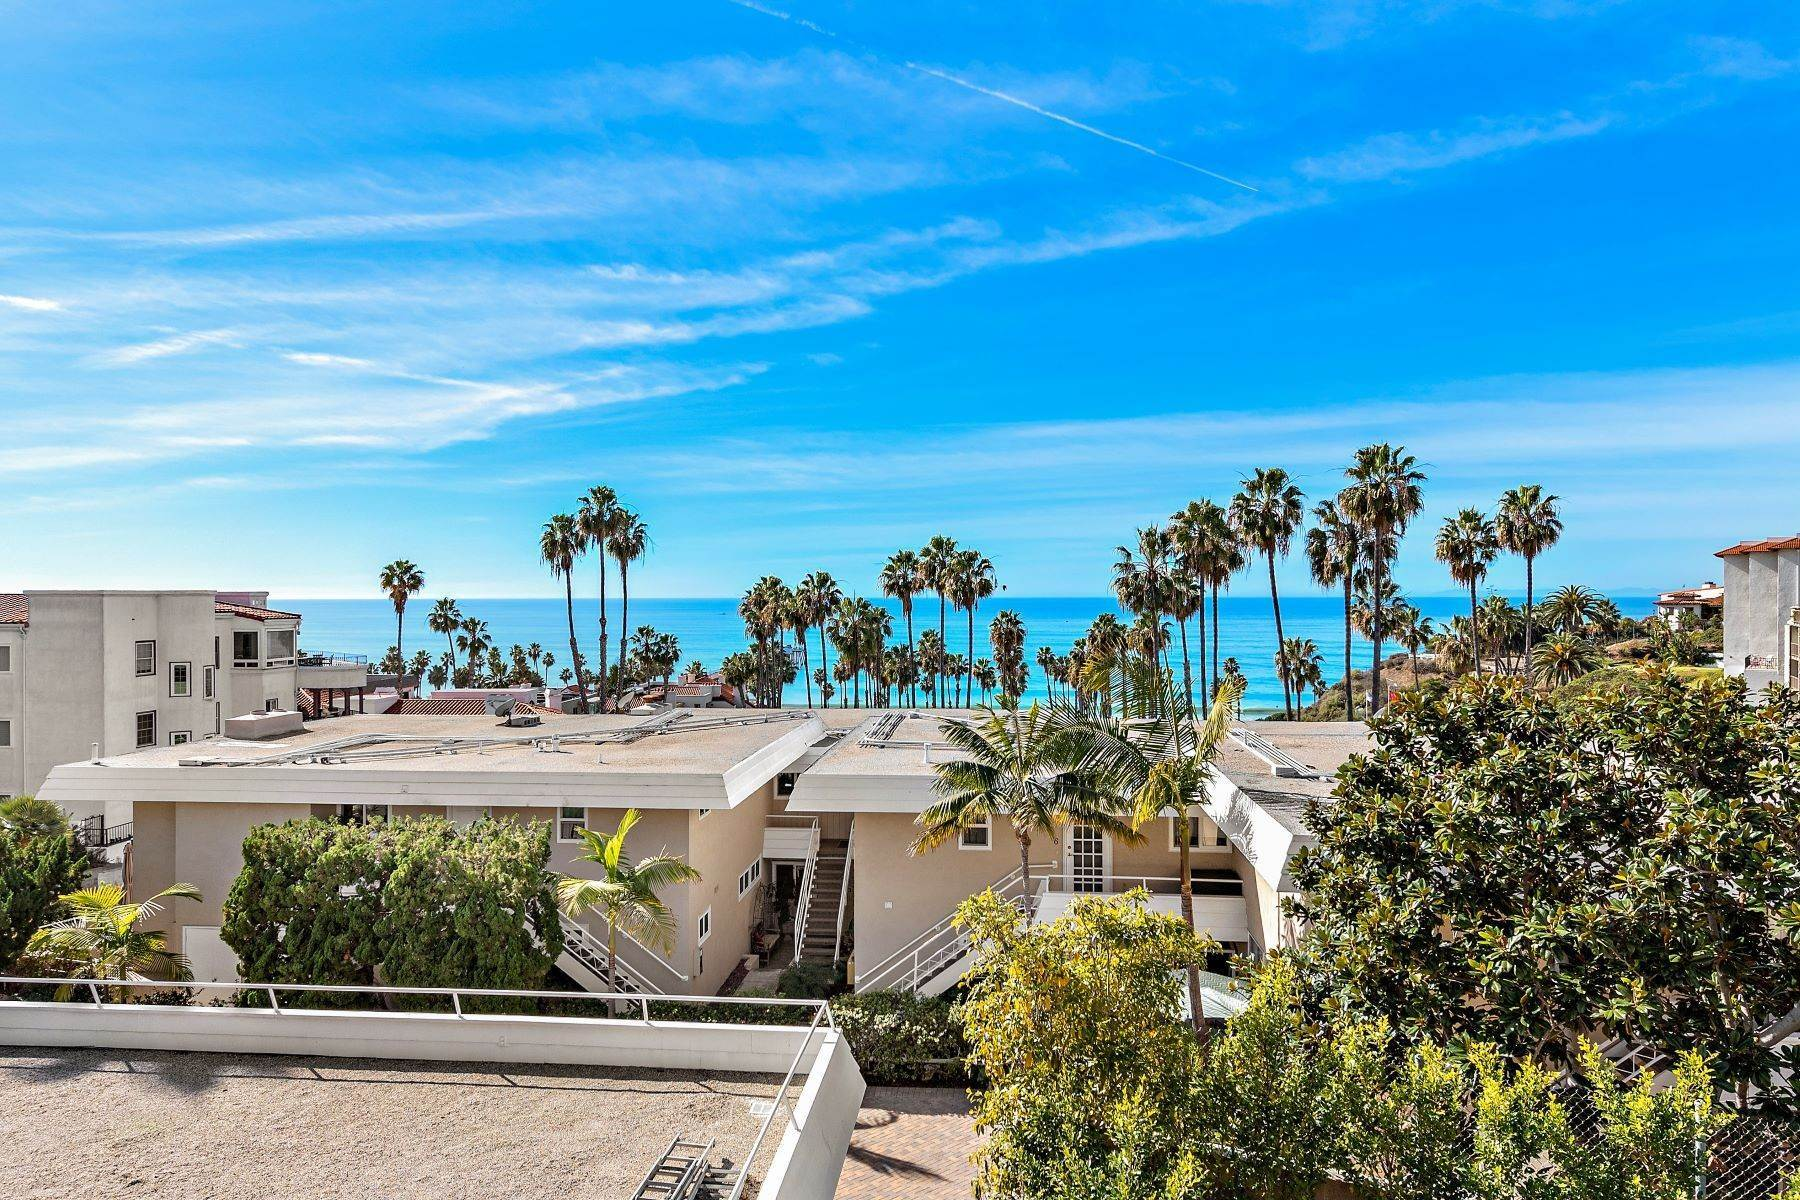 4. Condominiums for Sale at 321 Acebo Lane Unit #C, San Clemente, CA 92672 321 Acebo Lane, Unit #C San Clemente, California 92672 United States